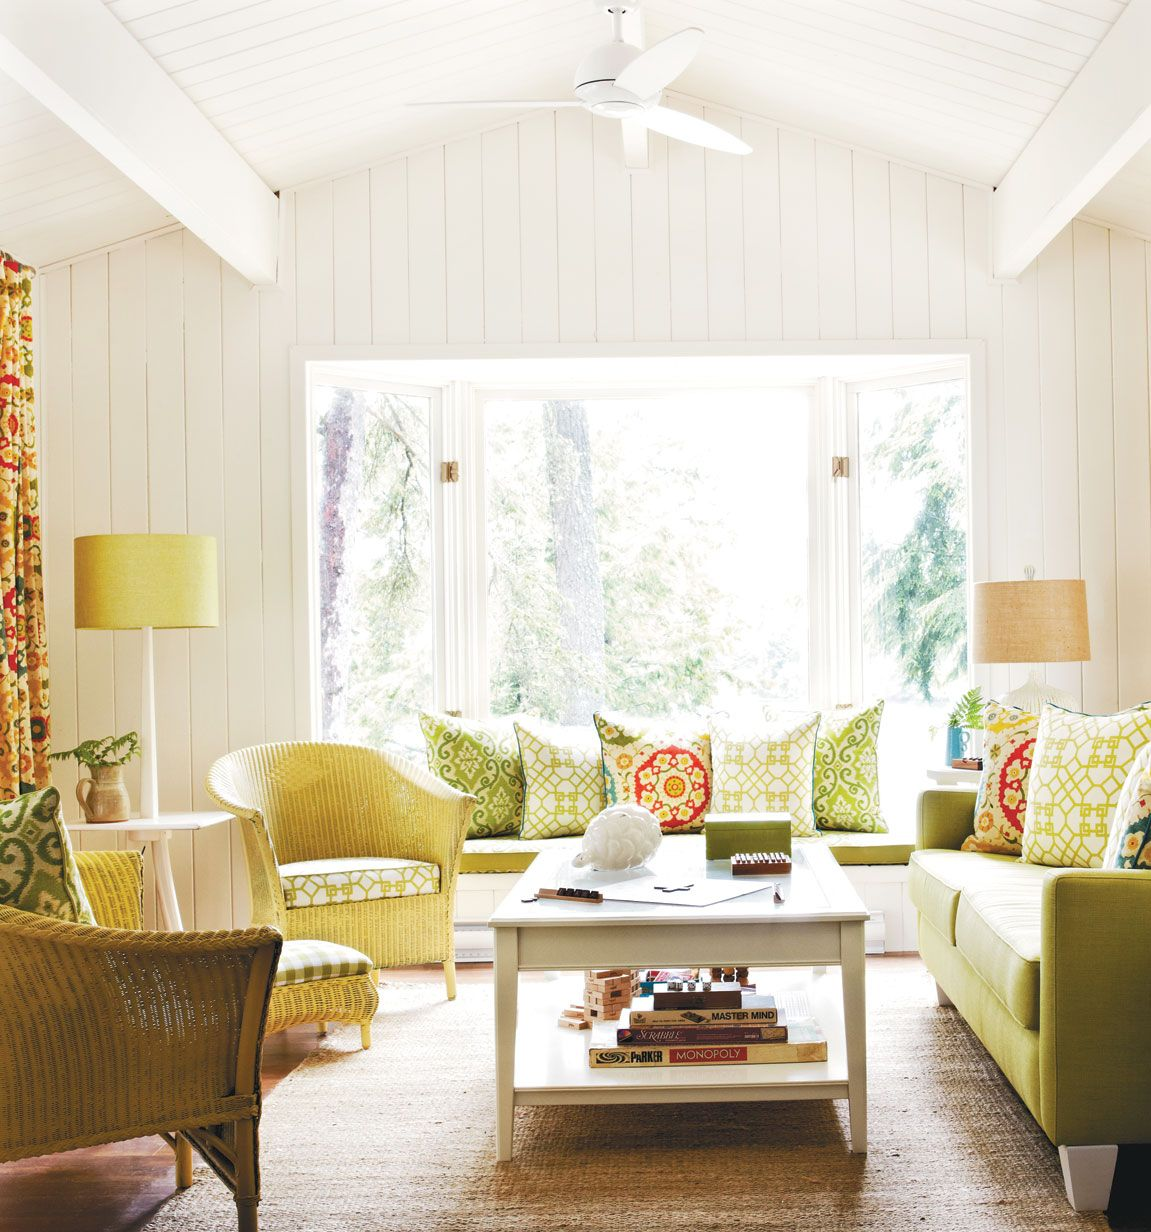 10 summer decorating ideas 10 summer decorating